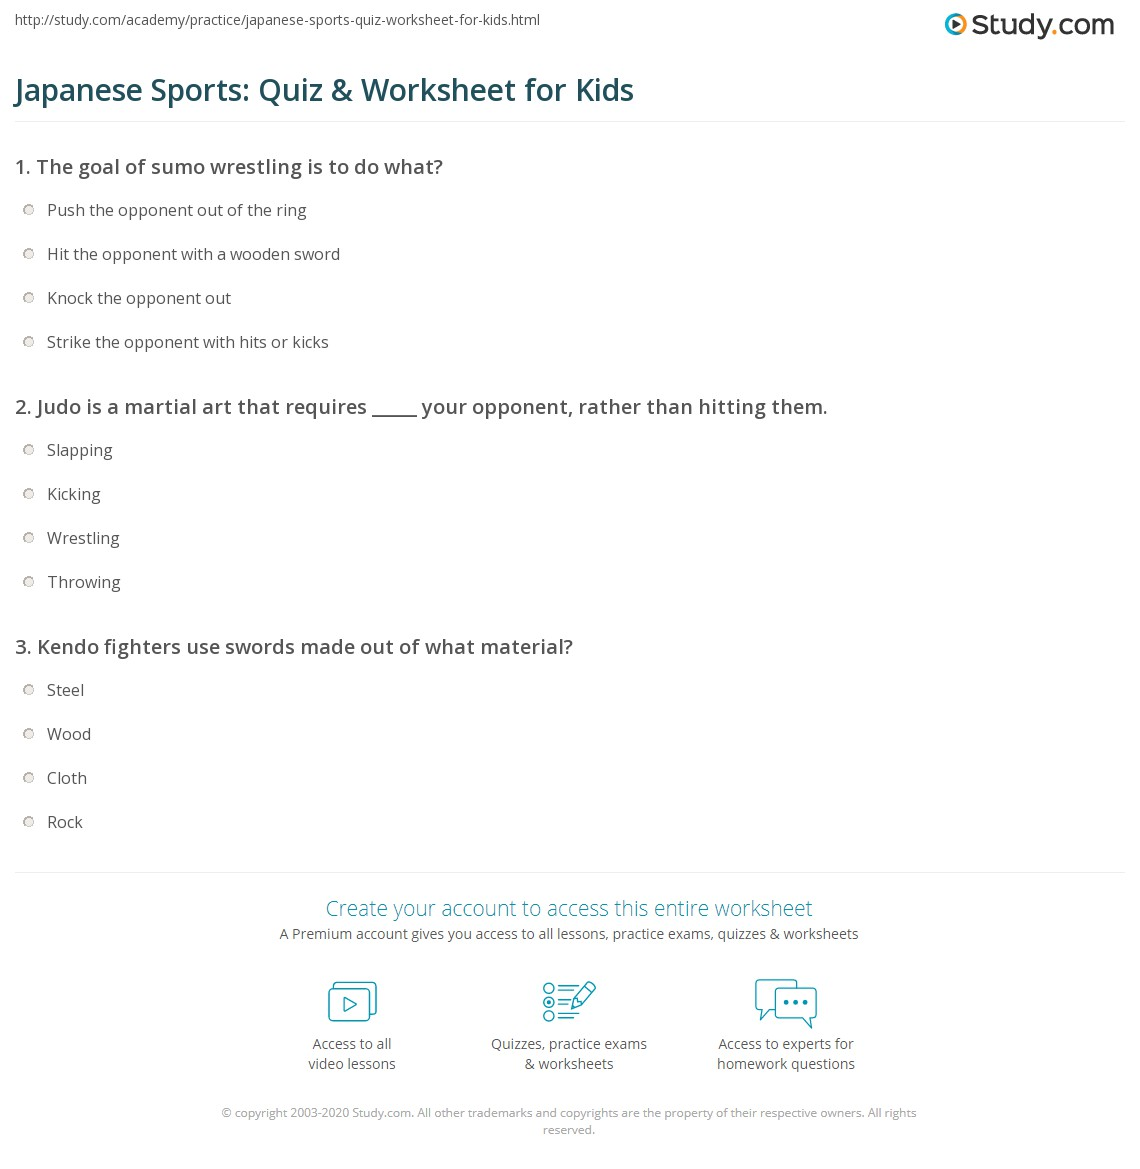 Japanese Sports: Quiz & Worksheet for Kids | Study.com